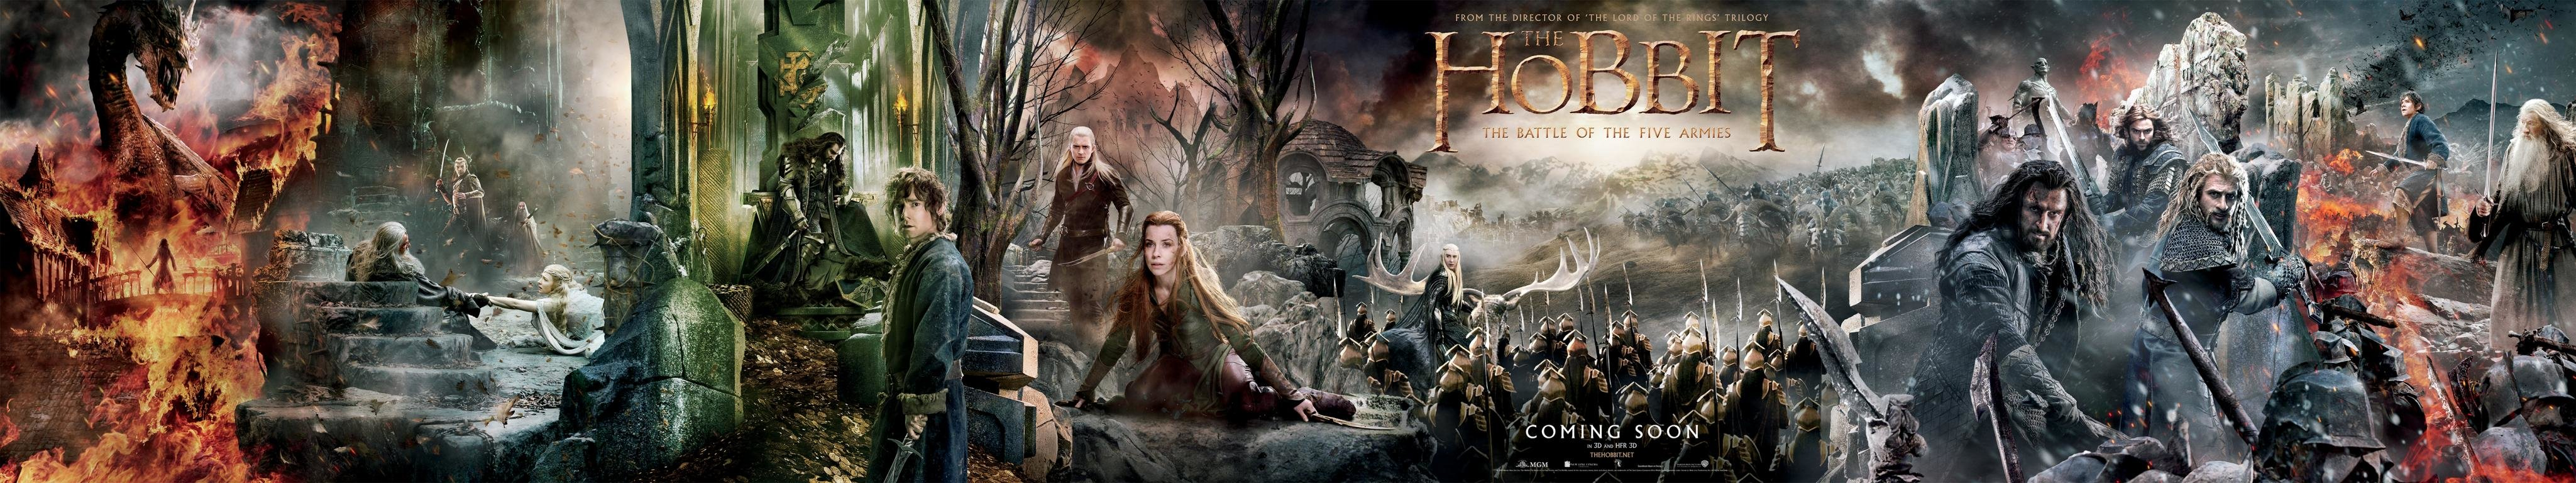 Download triple monitor 4098x768 The Hobbit: The Battle Of The Five Armies desktop background ID:100627 for free